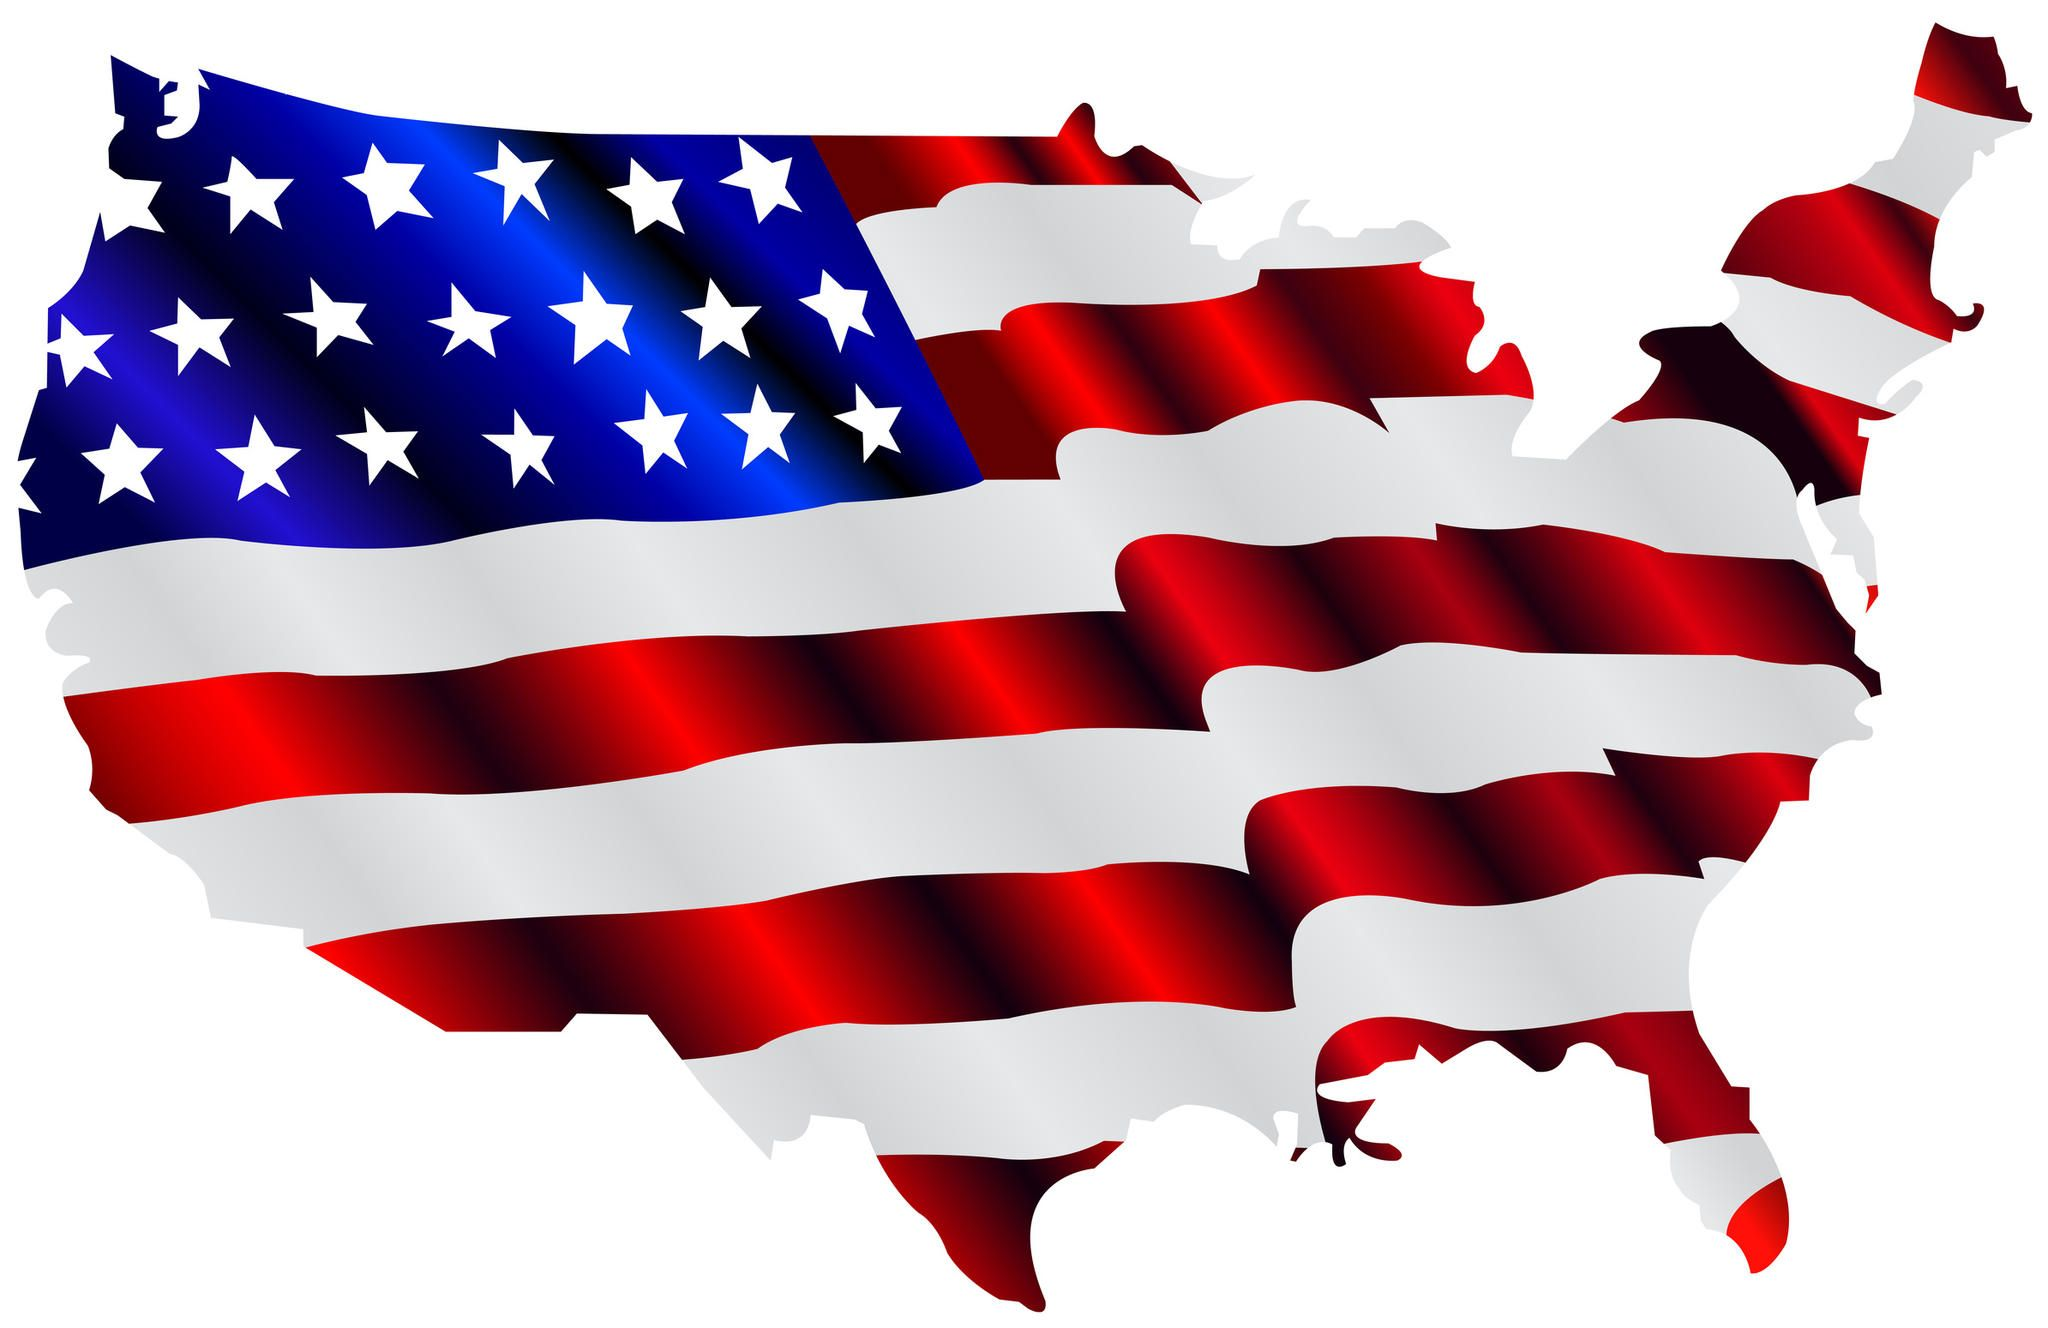 On being an american american flag wallpaper and for Design company usa